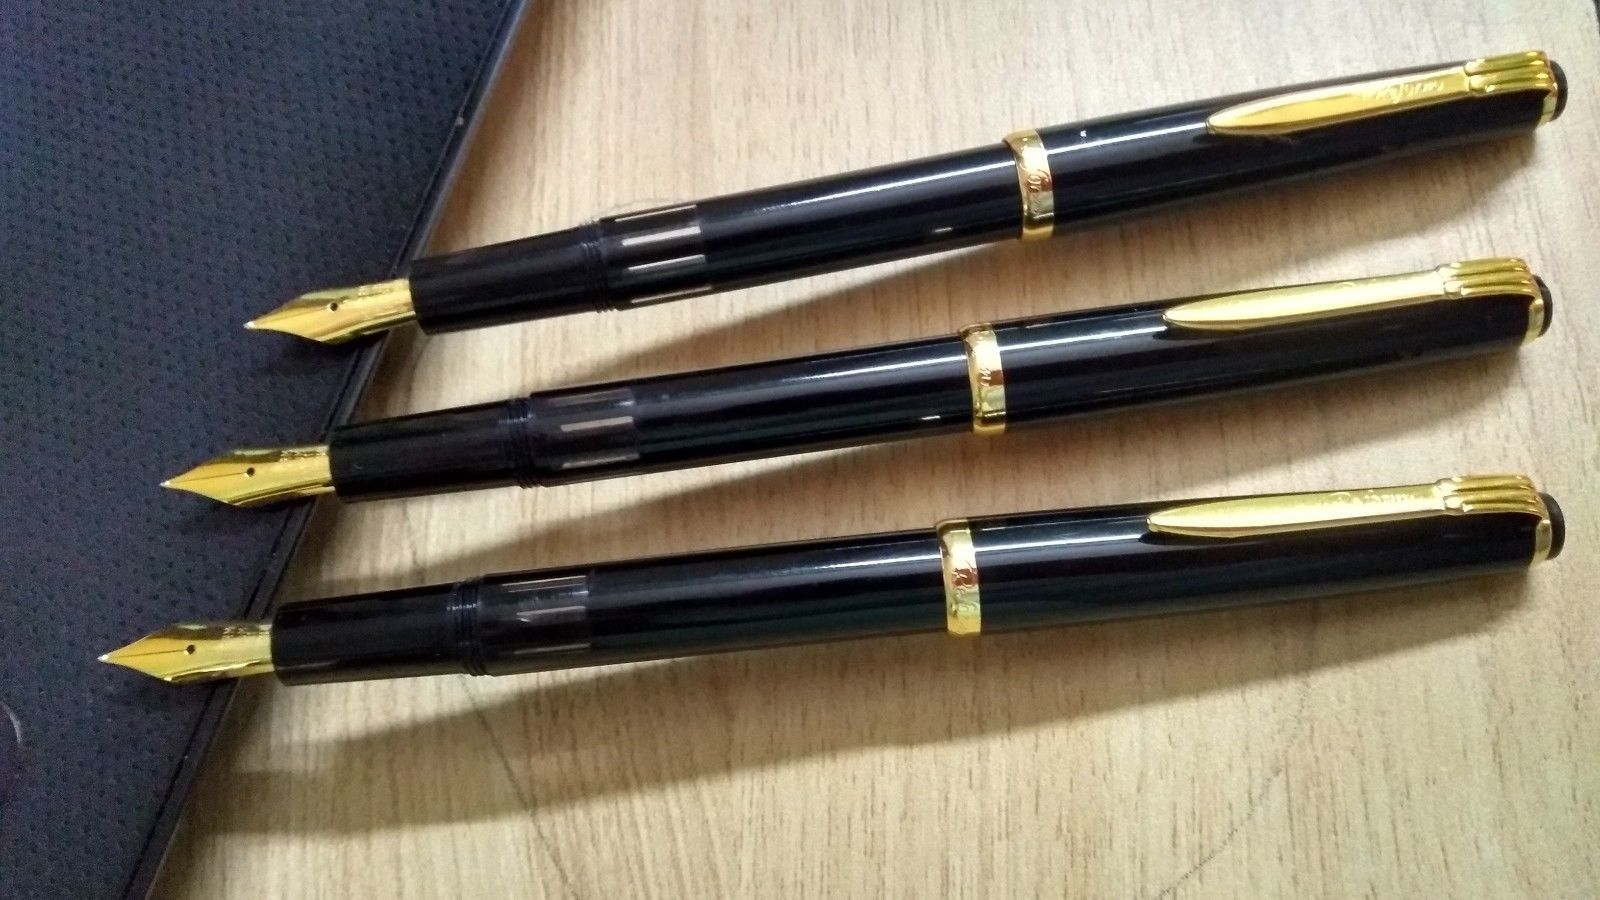 Lot of 3 pc Reform Fountain pen- iridium tipped, Piston filler, NEVER USED